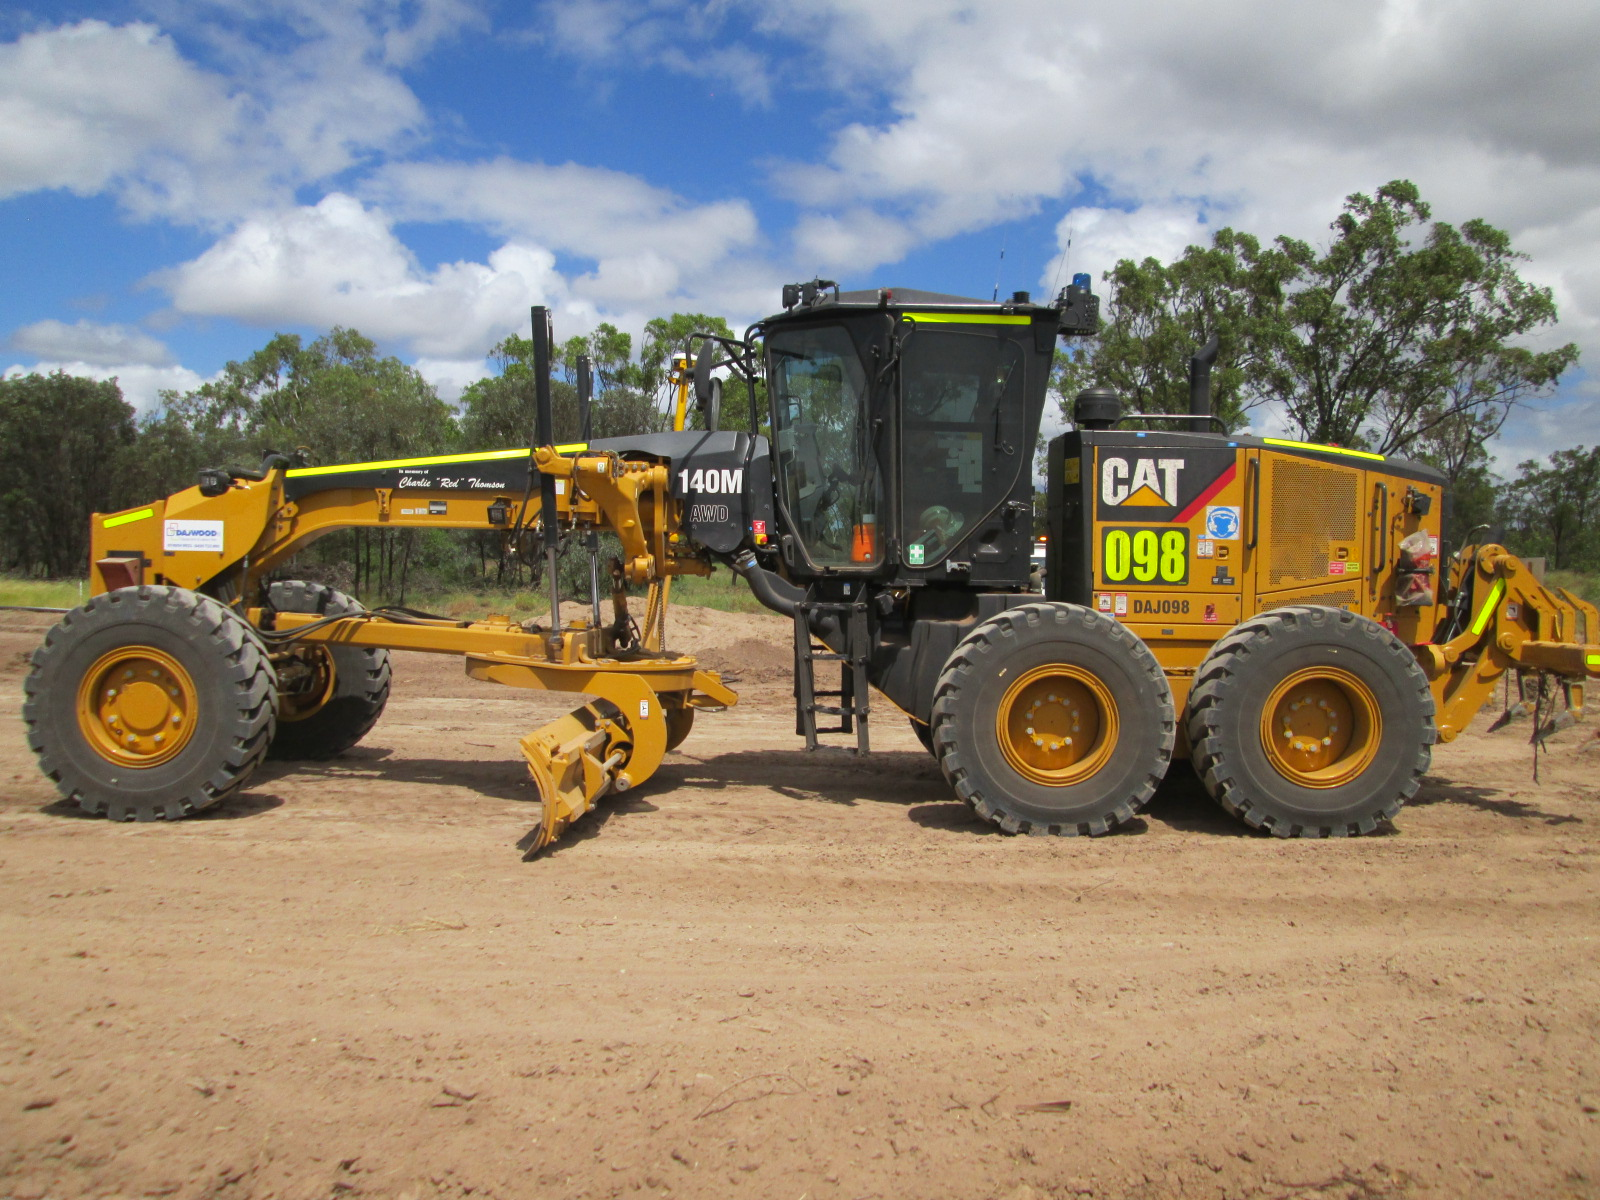 CATERPILLAR 140M AWD GRADER FOR HIRE